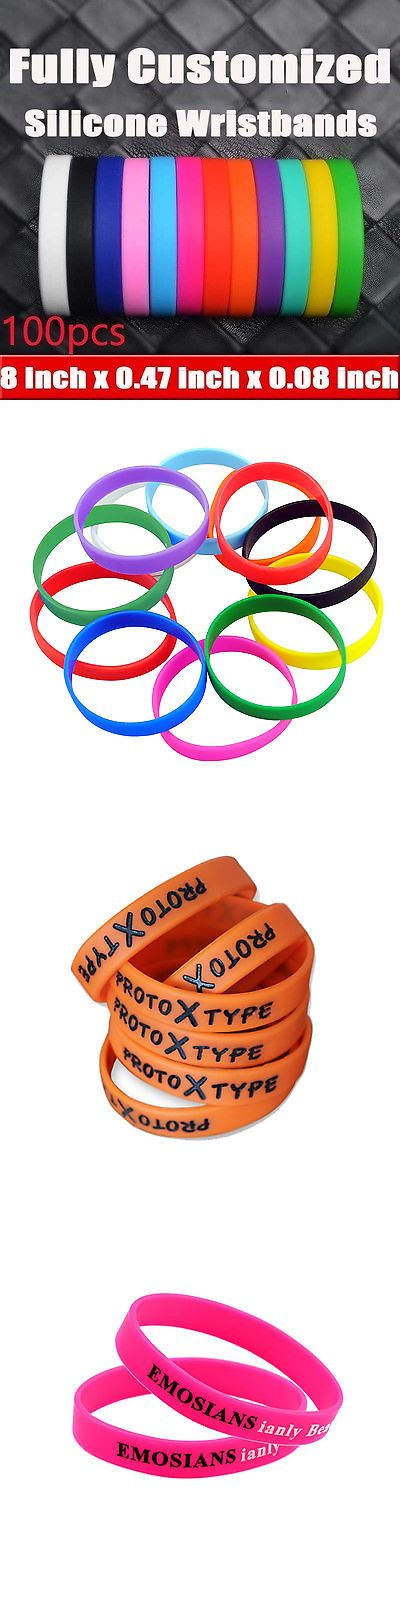 Wristbands 112603: 100Pcs Sports Silicone Rubber Bracelet Adult Wristbands Custom Design Wrist Band BUY IT NOW ONLY: $44.26